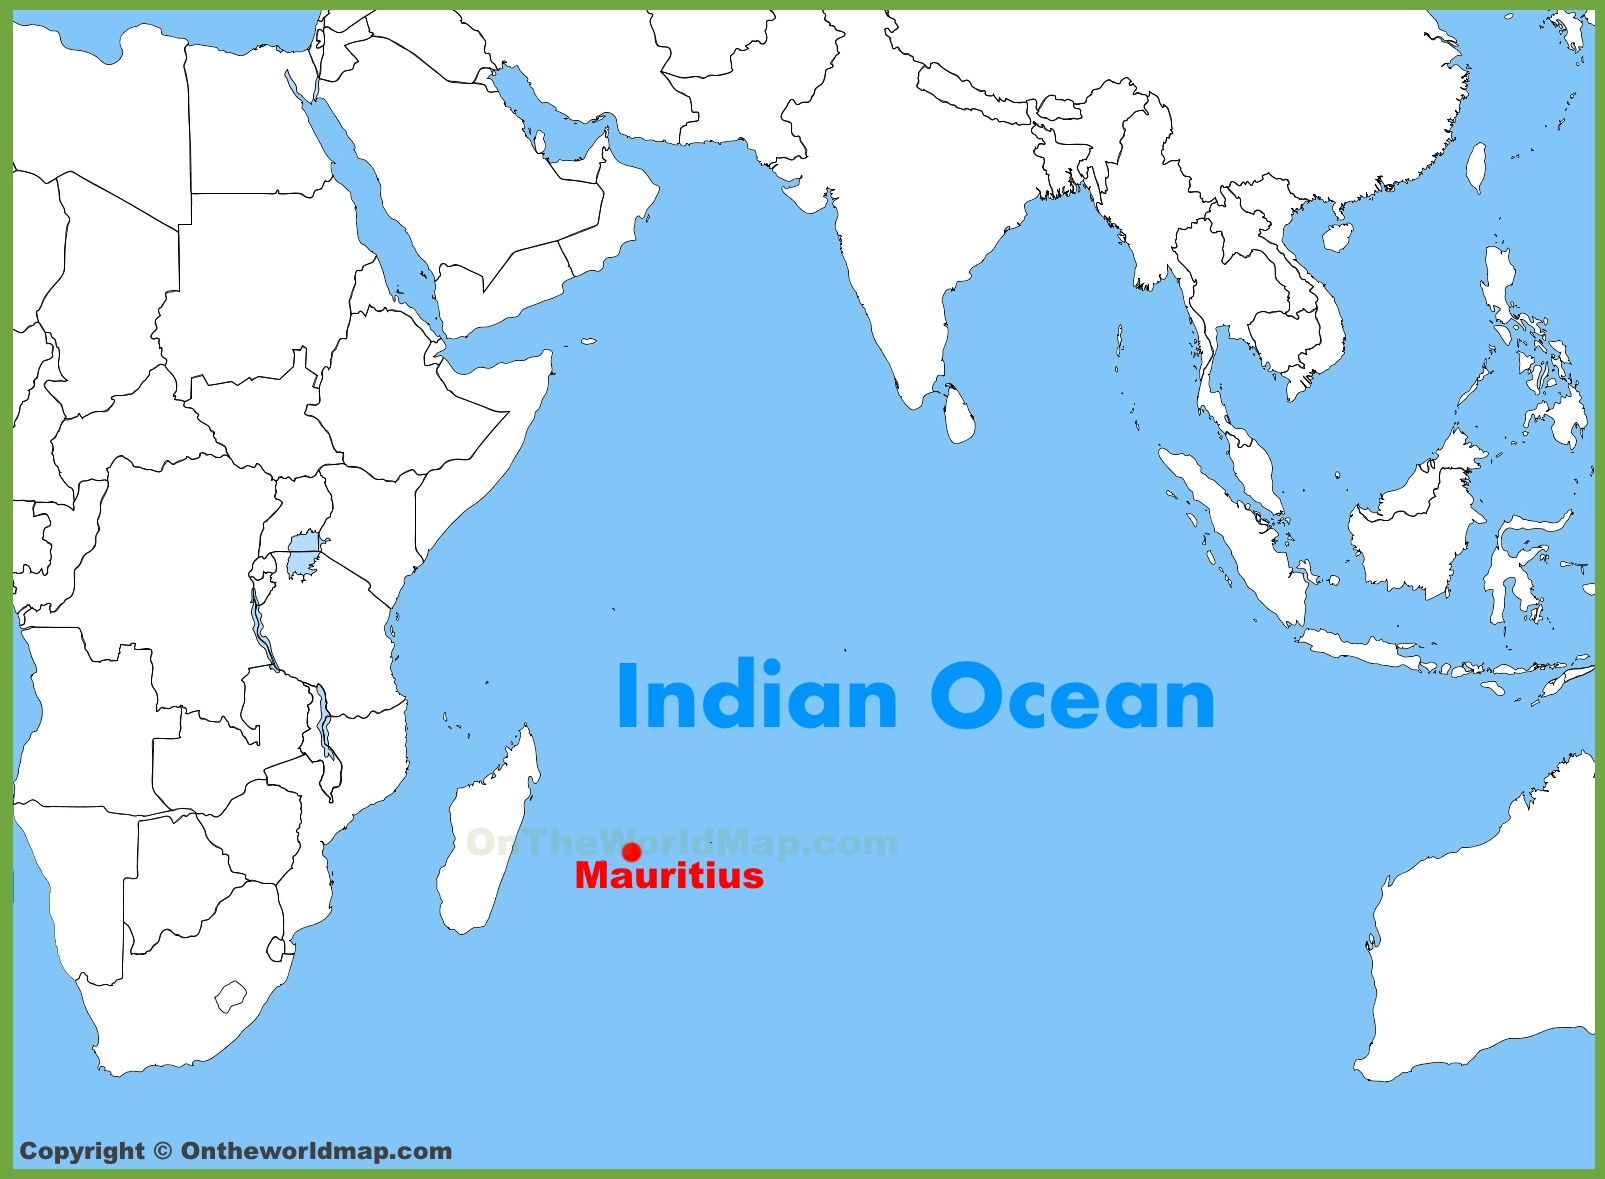 Mauritius maps maps of mauritius mauritius location on the indian ocean map gumiabroncs Images